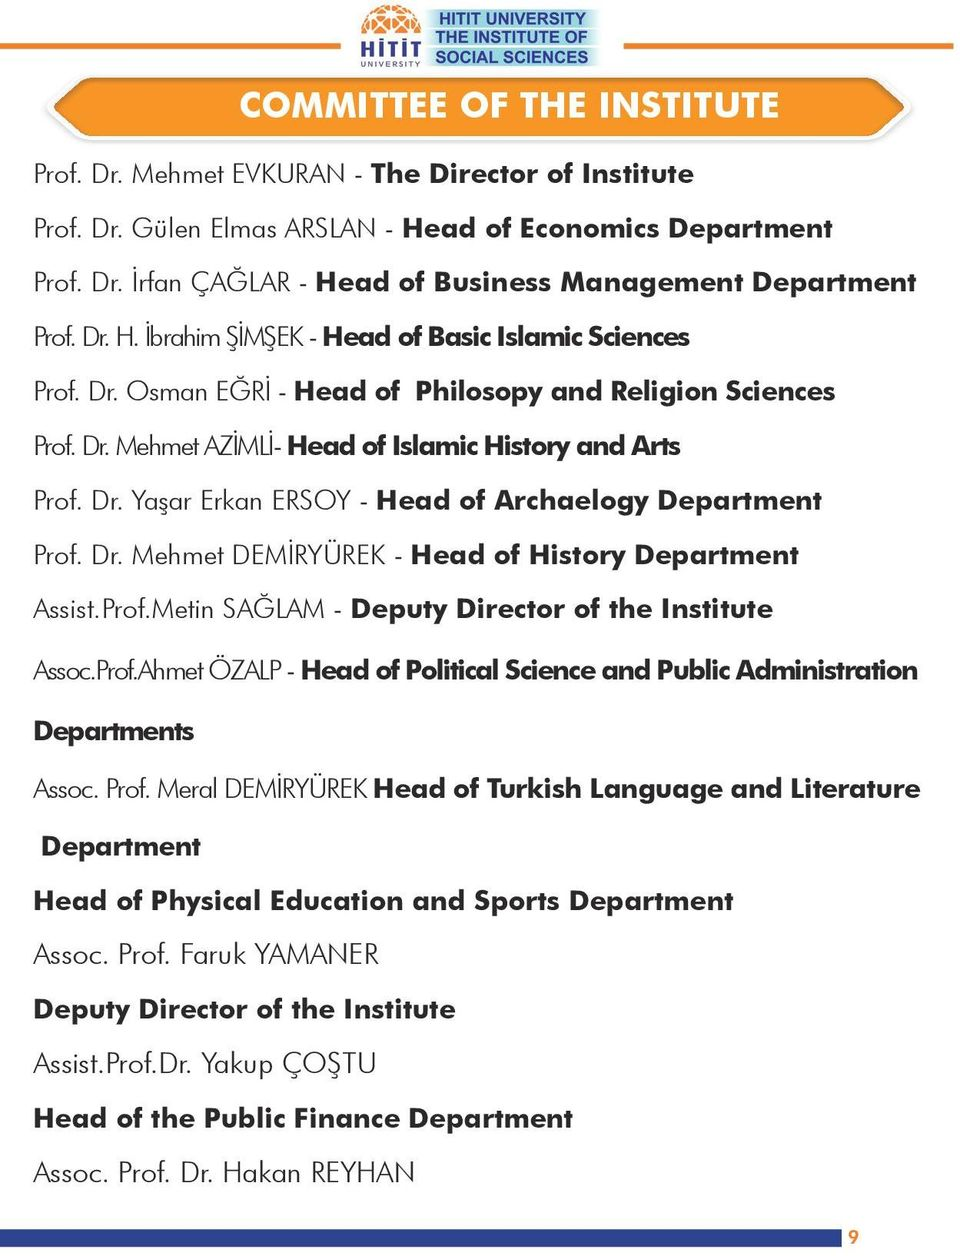 Dr. Mehmet DEMİRYÜREK - Head of History Department Assist.Prof.Metin SAĞLAM - Deputy Director of the Institute Assoc.Prof.Ahmet ÖZALP - Head of Political Science and Public Administration Departments Assoc.